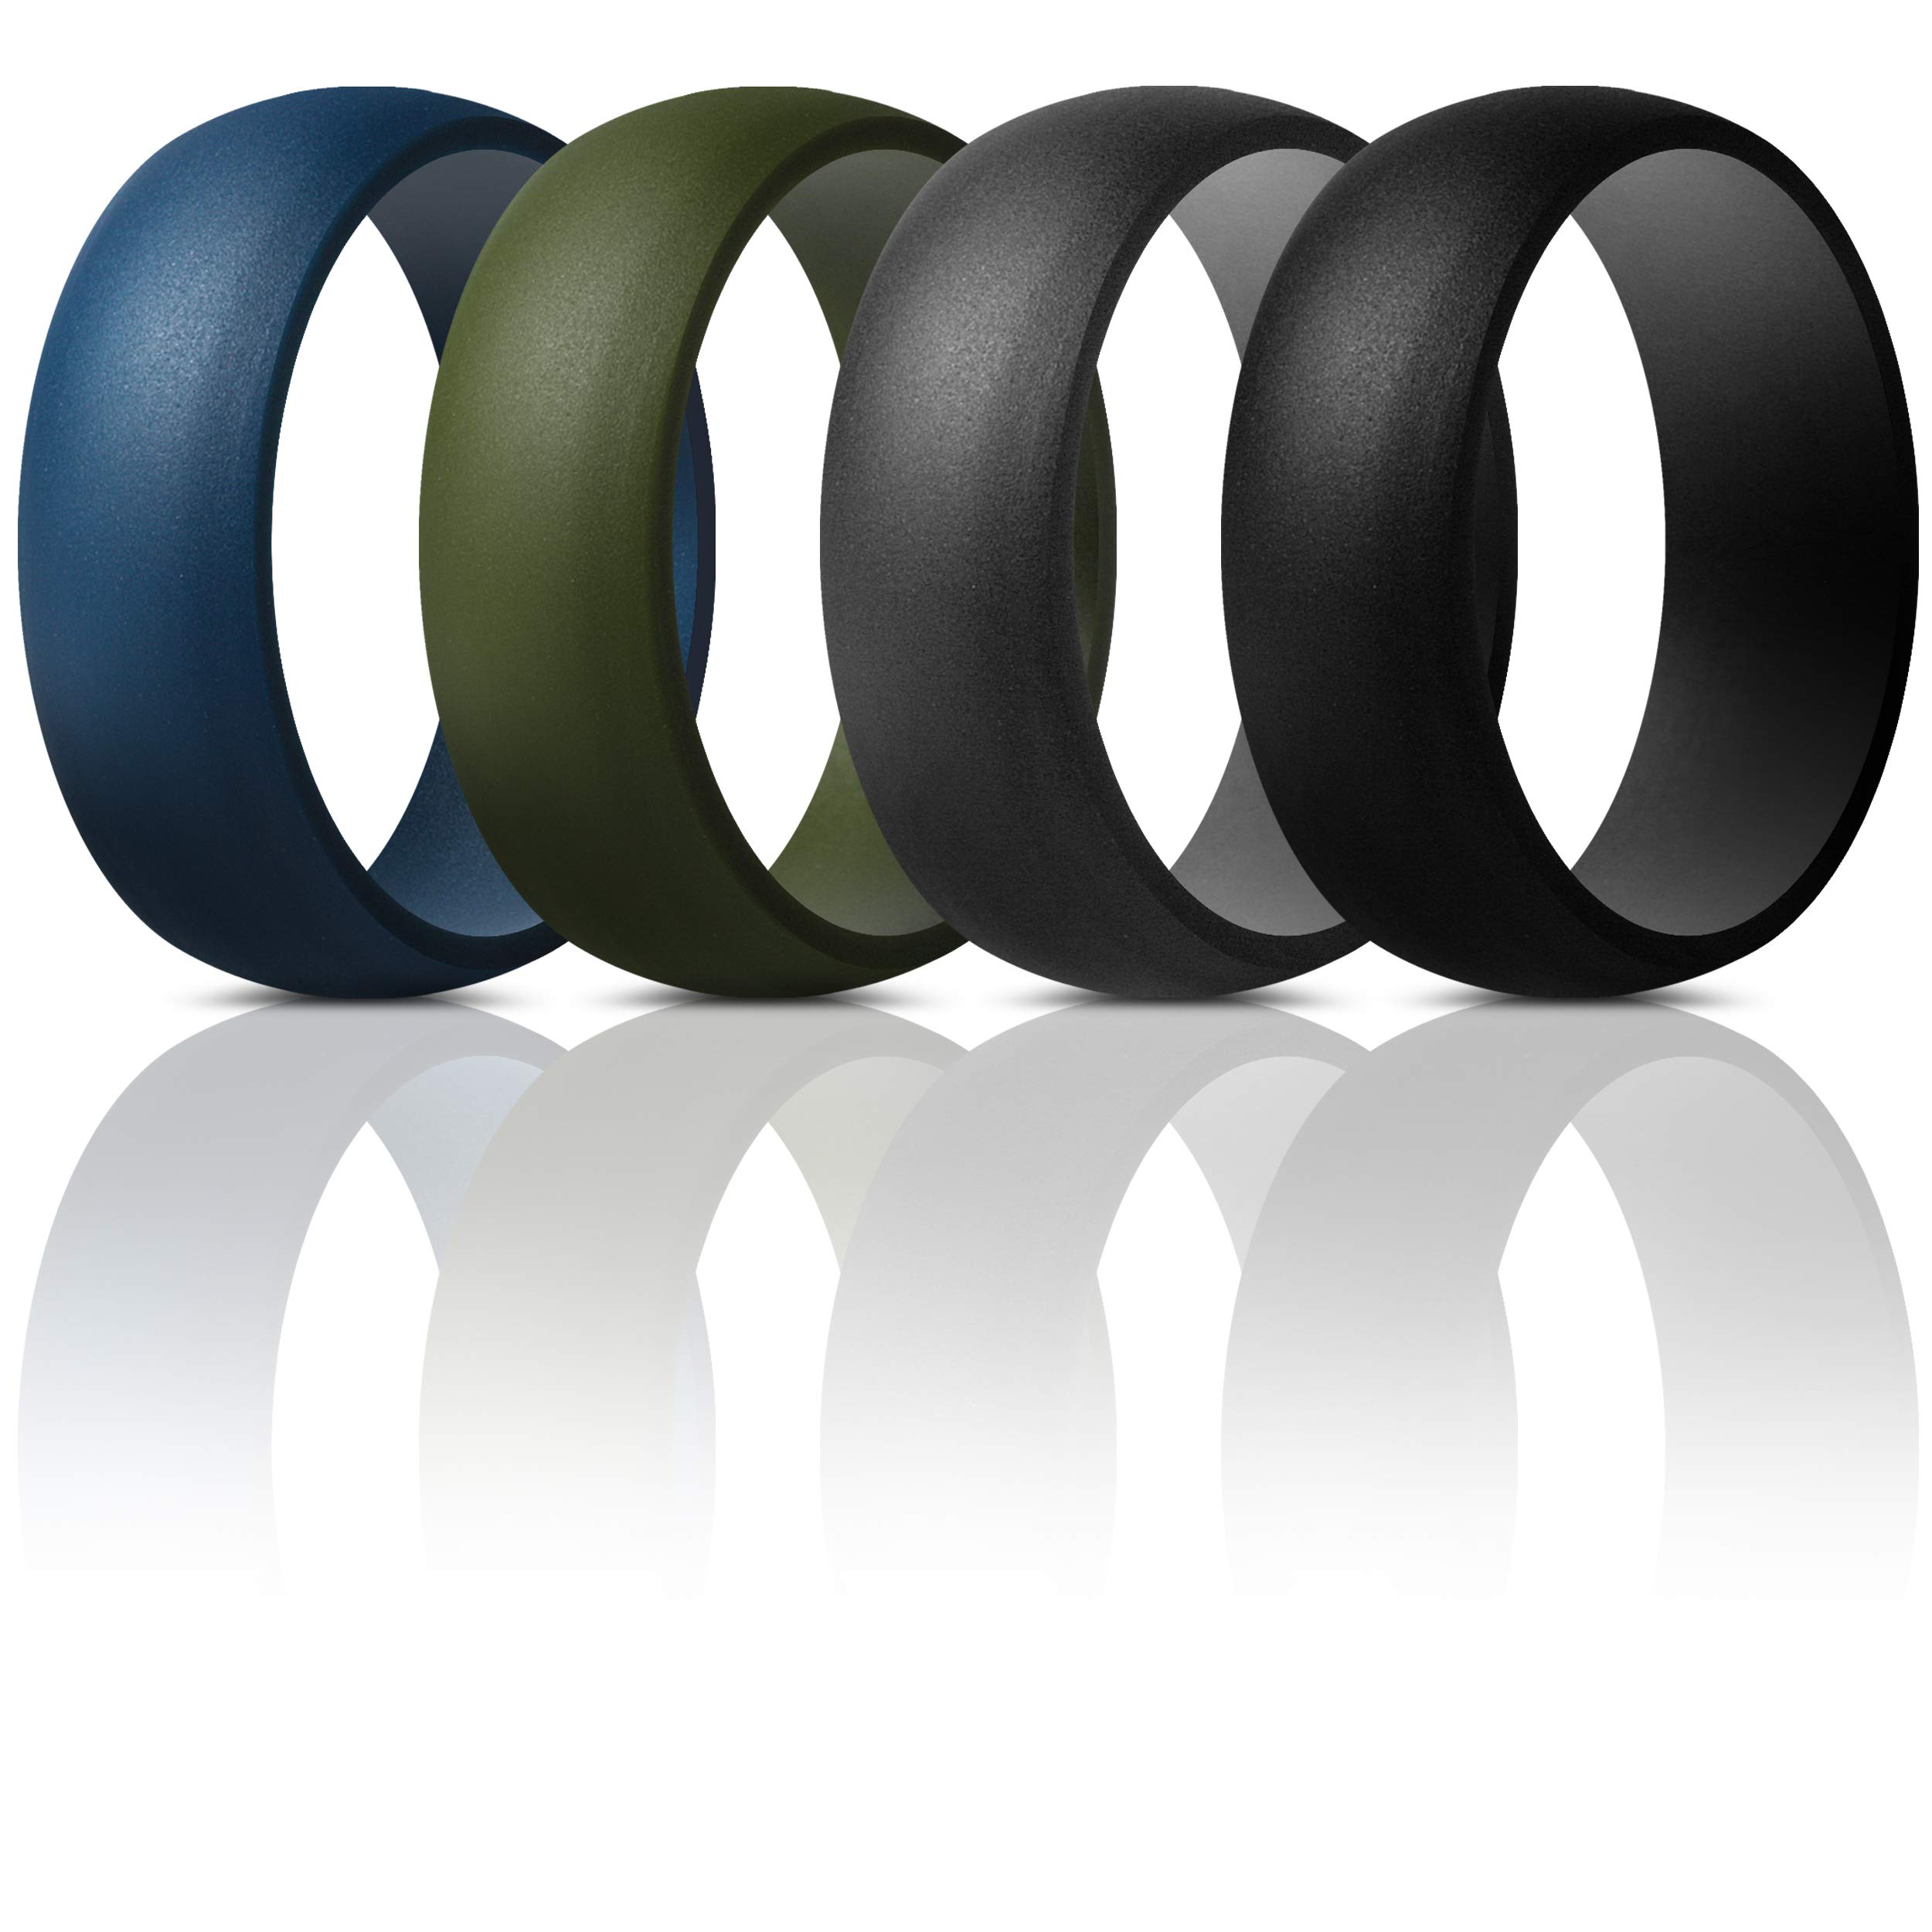 8.7mm Wide ThunderFit Silicone Wedding Ring for Men 2.5mm Thick